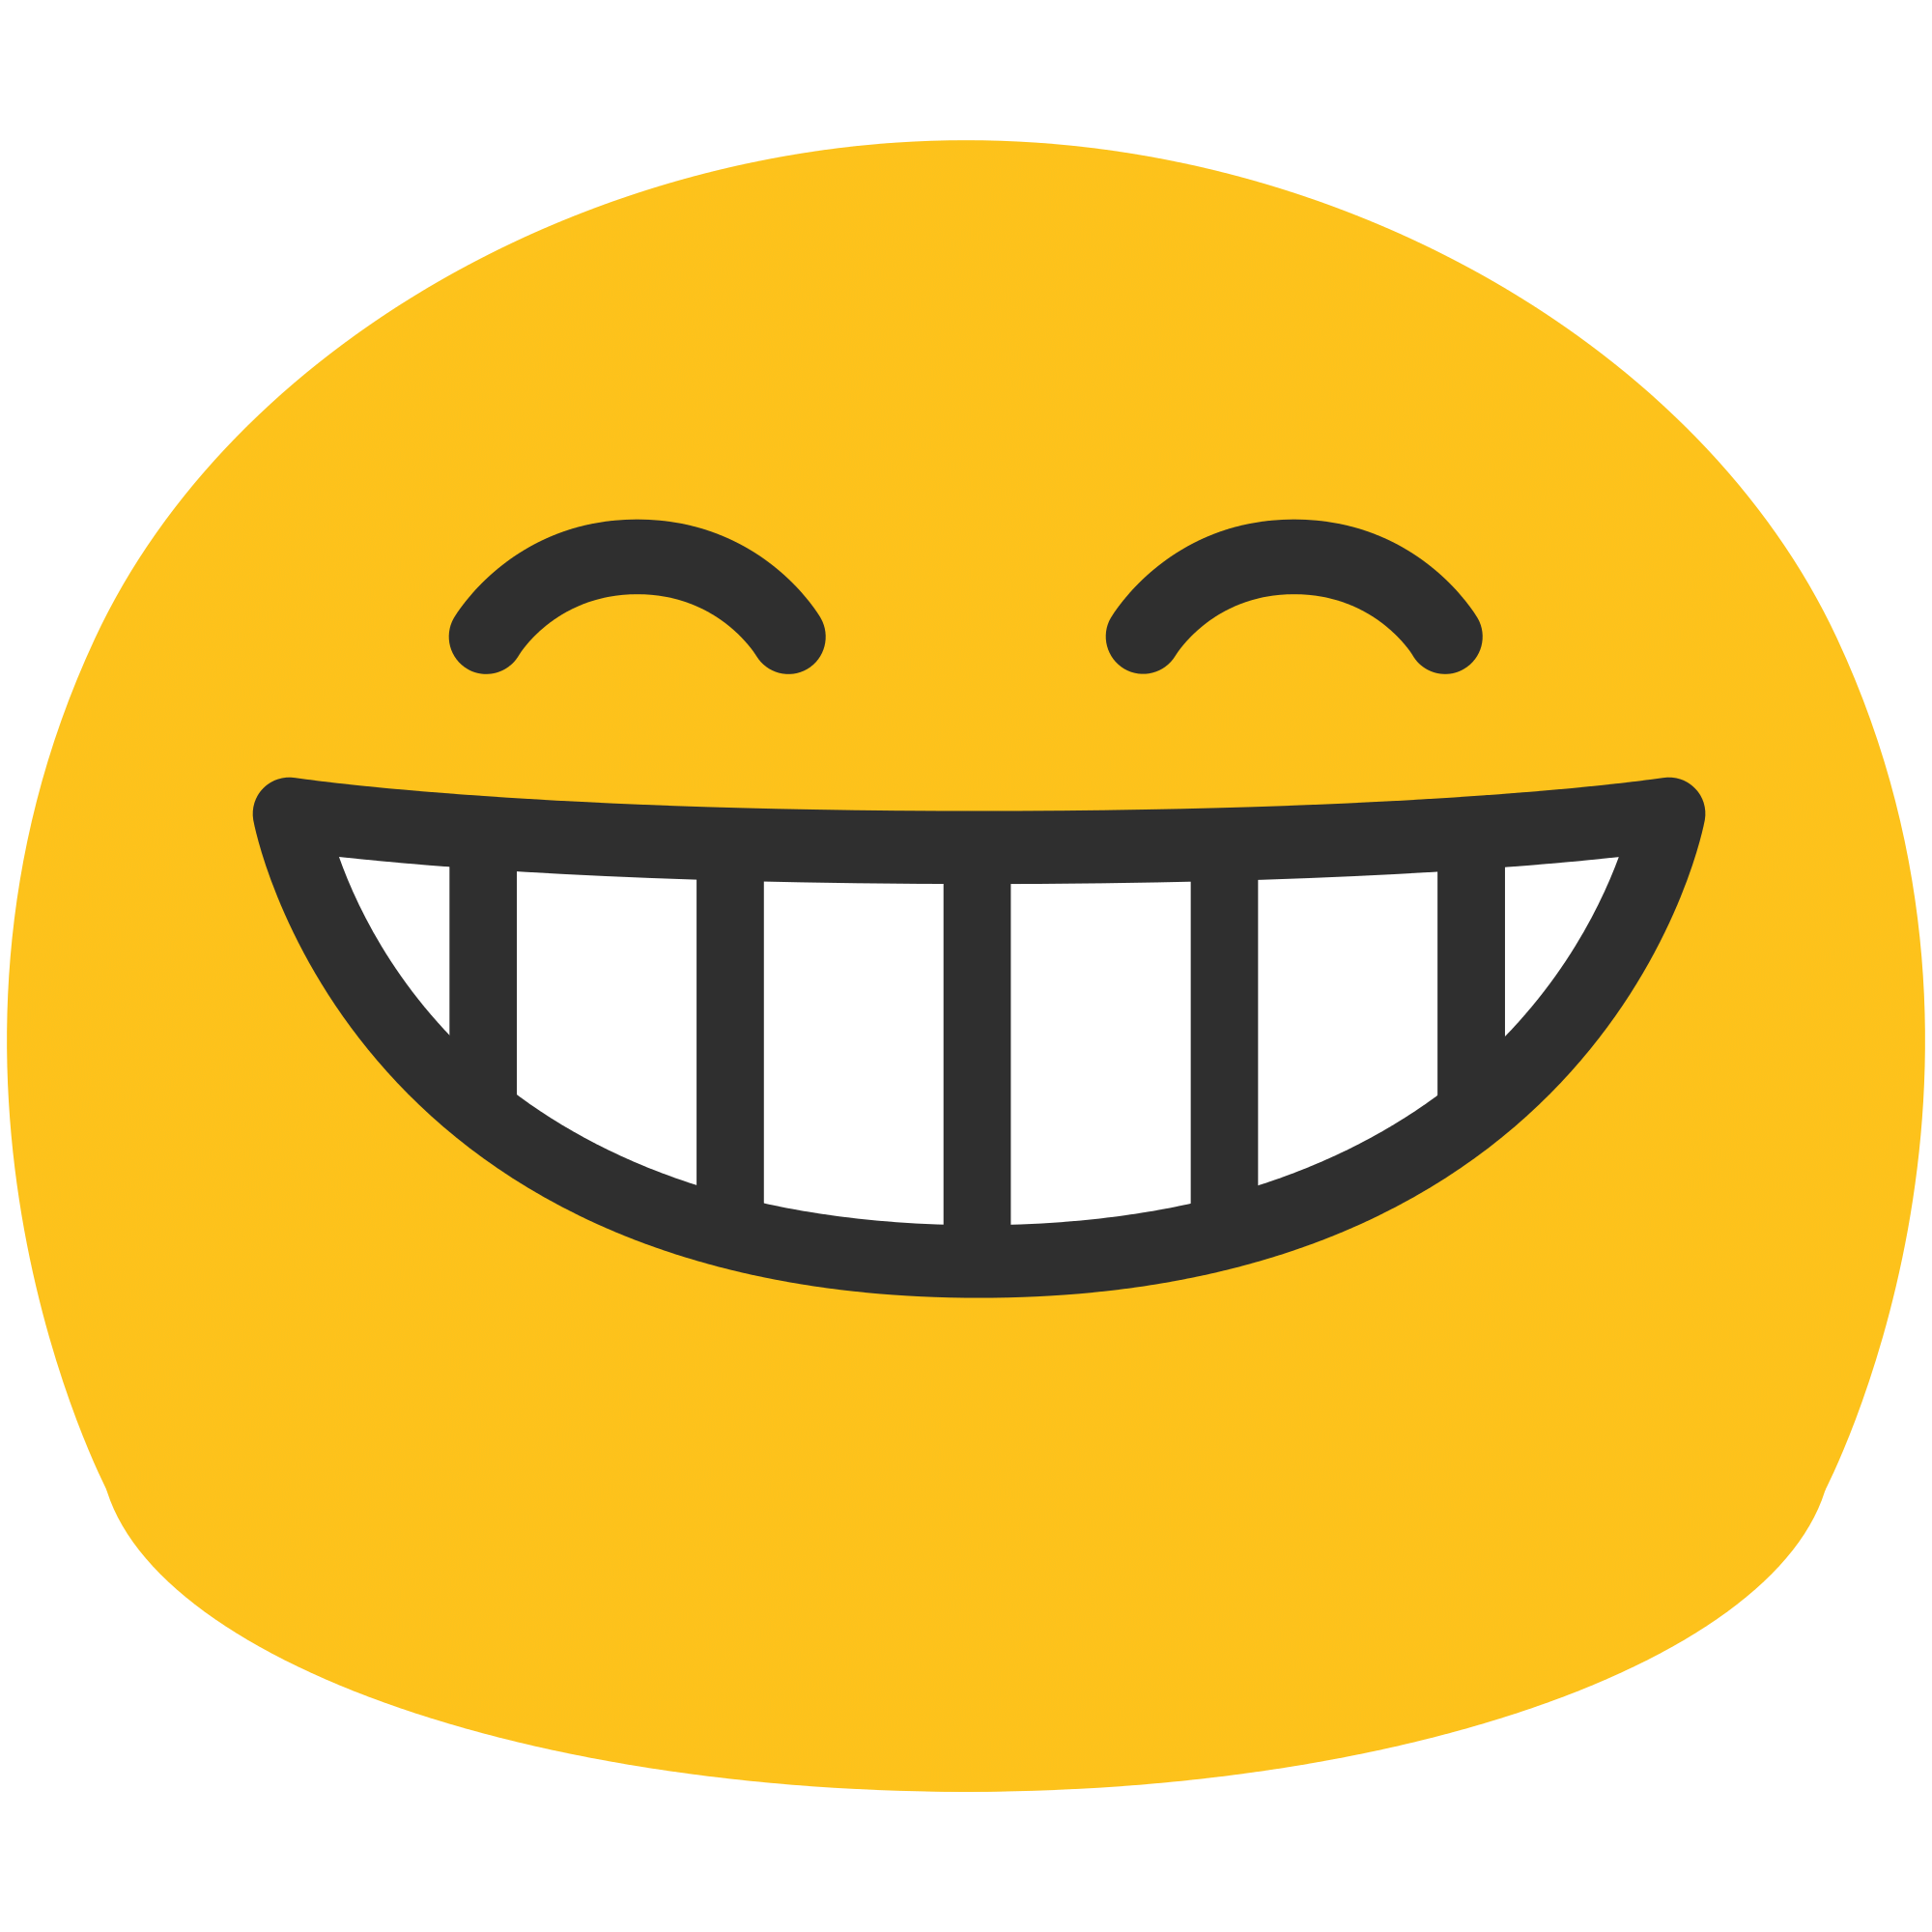 Smiley Looking Happy PNG Image